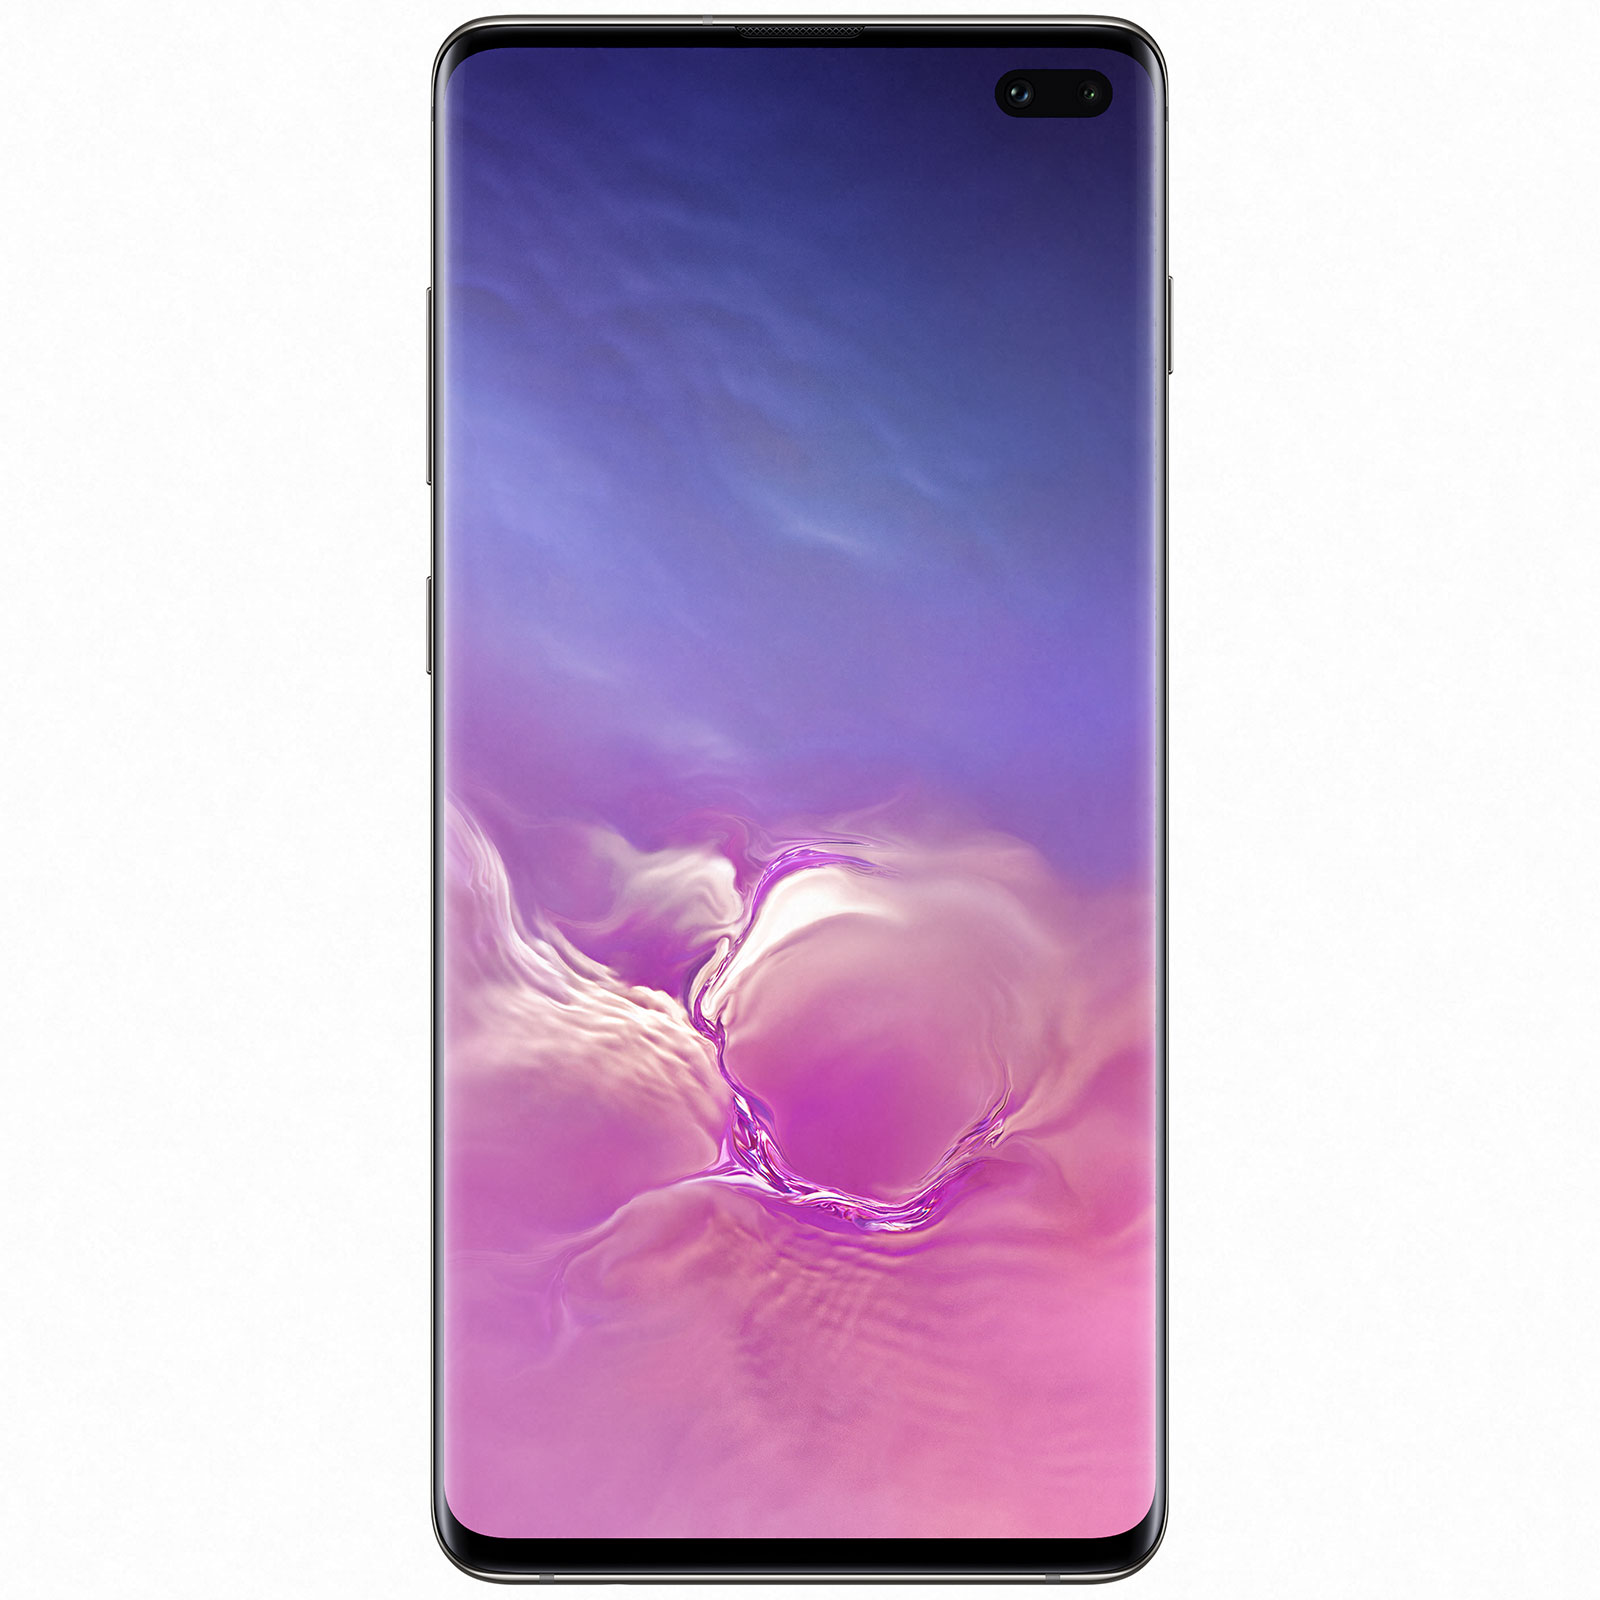 "Mobile & smartphone Samsung Galaxy S10+ Edition Performance SM-G975F Noir Prisme (12 Go / 1 To) Smartphone 4G-LTE Advanced Dual SIM IP68 - Exynos 9820 8-Core 2.8 GHz - RAM 12 Go - Ecran tactile Super AMOLED 6.4"" 1440 x 3040 - 1 To - NFC/Bluetooth 5.0 - 4100 mAh - Android 9.0"